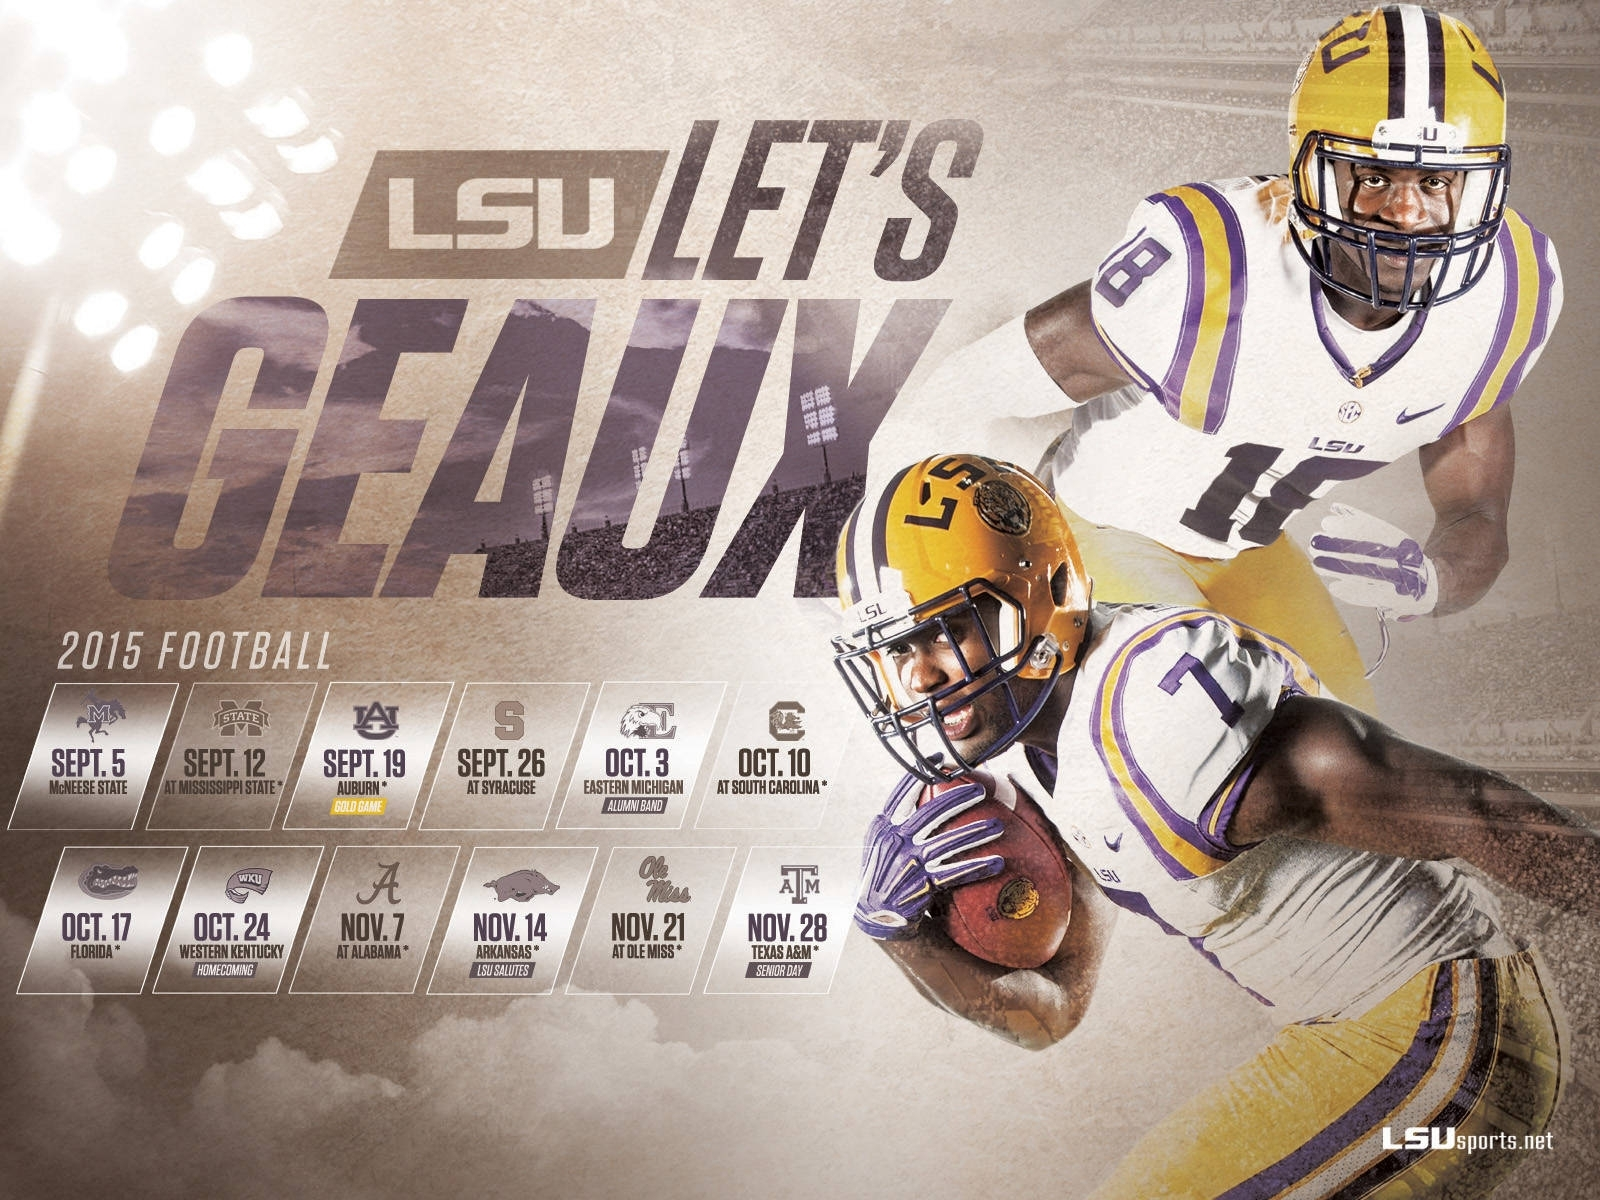 2015-16 lsu athletics wallpapers - lsusports - the official web